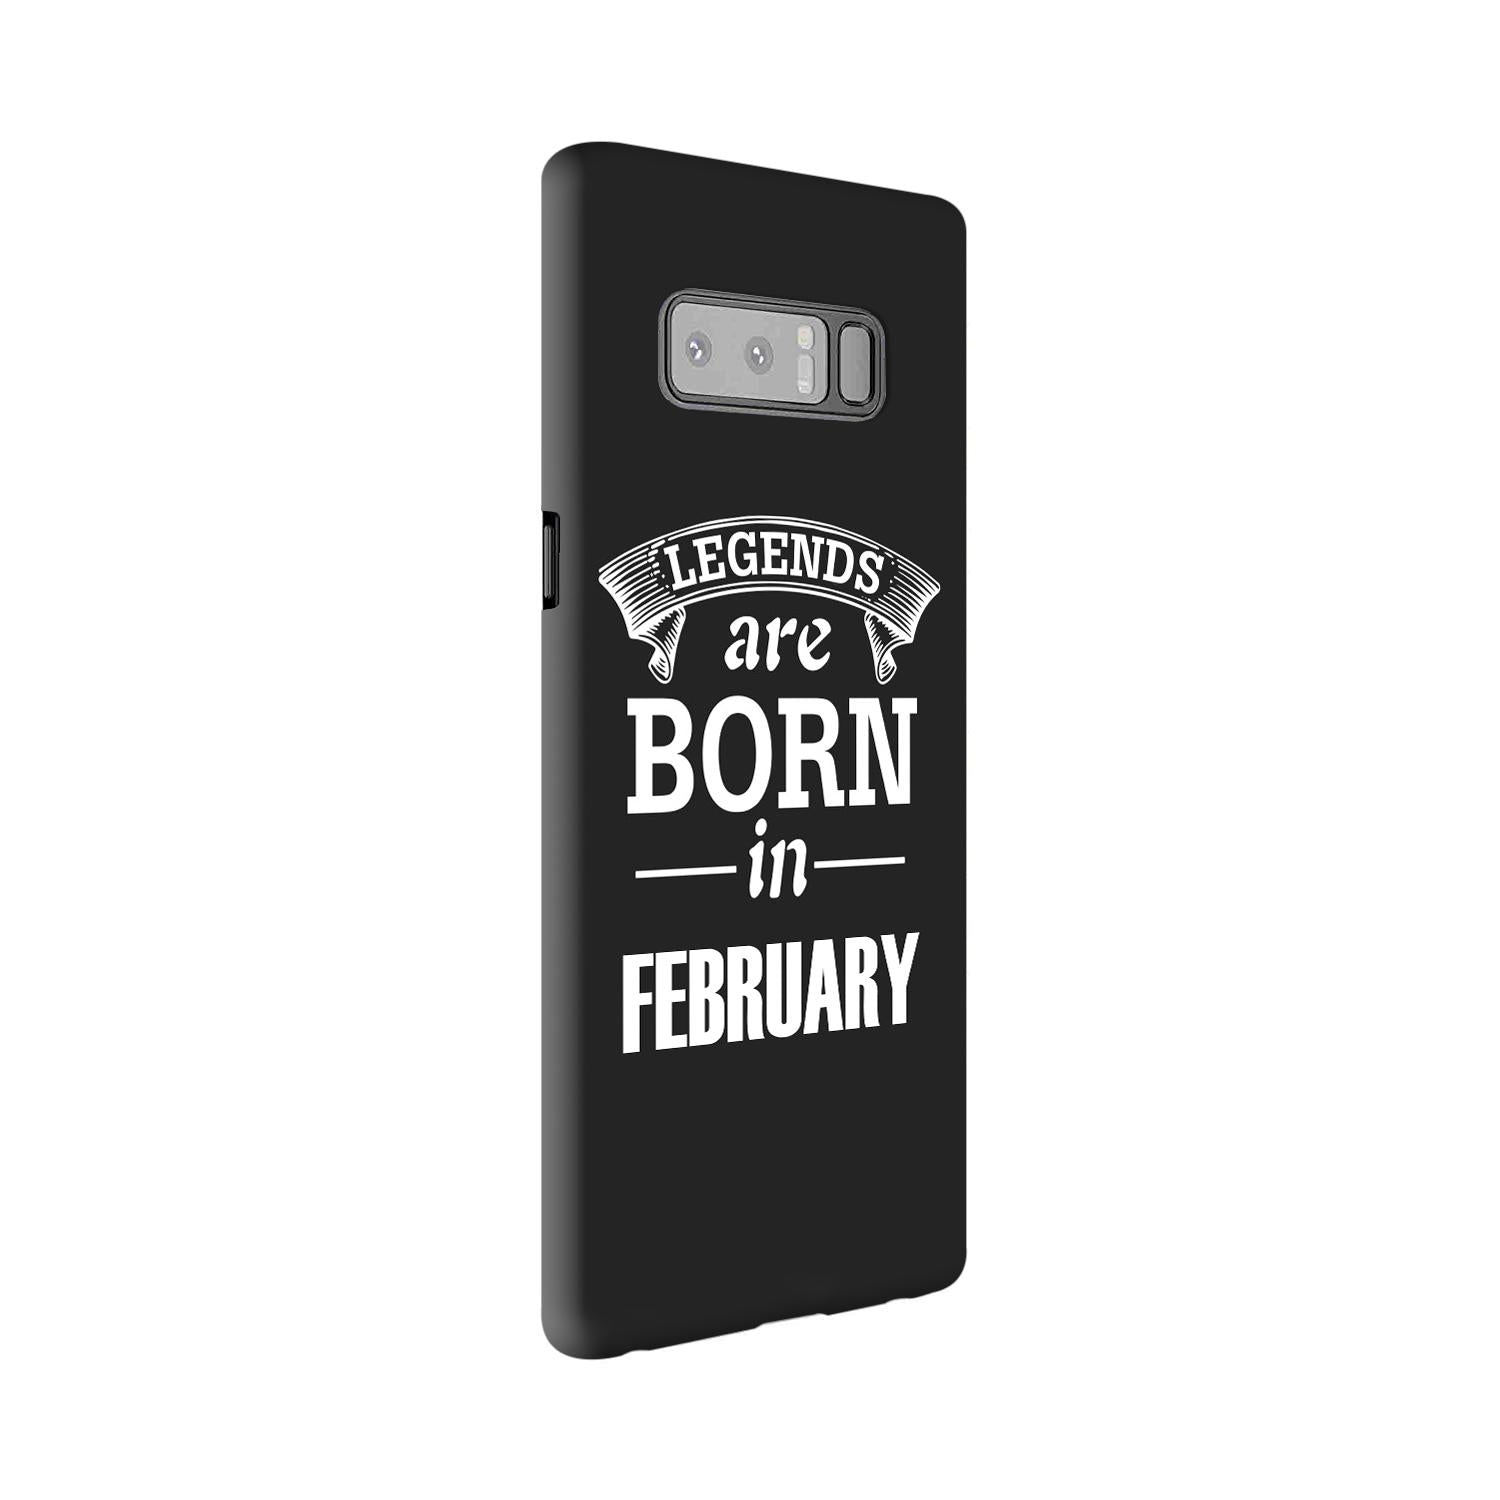 Legends February Samsung Galaxy Note 8 Mobile Cover Case